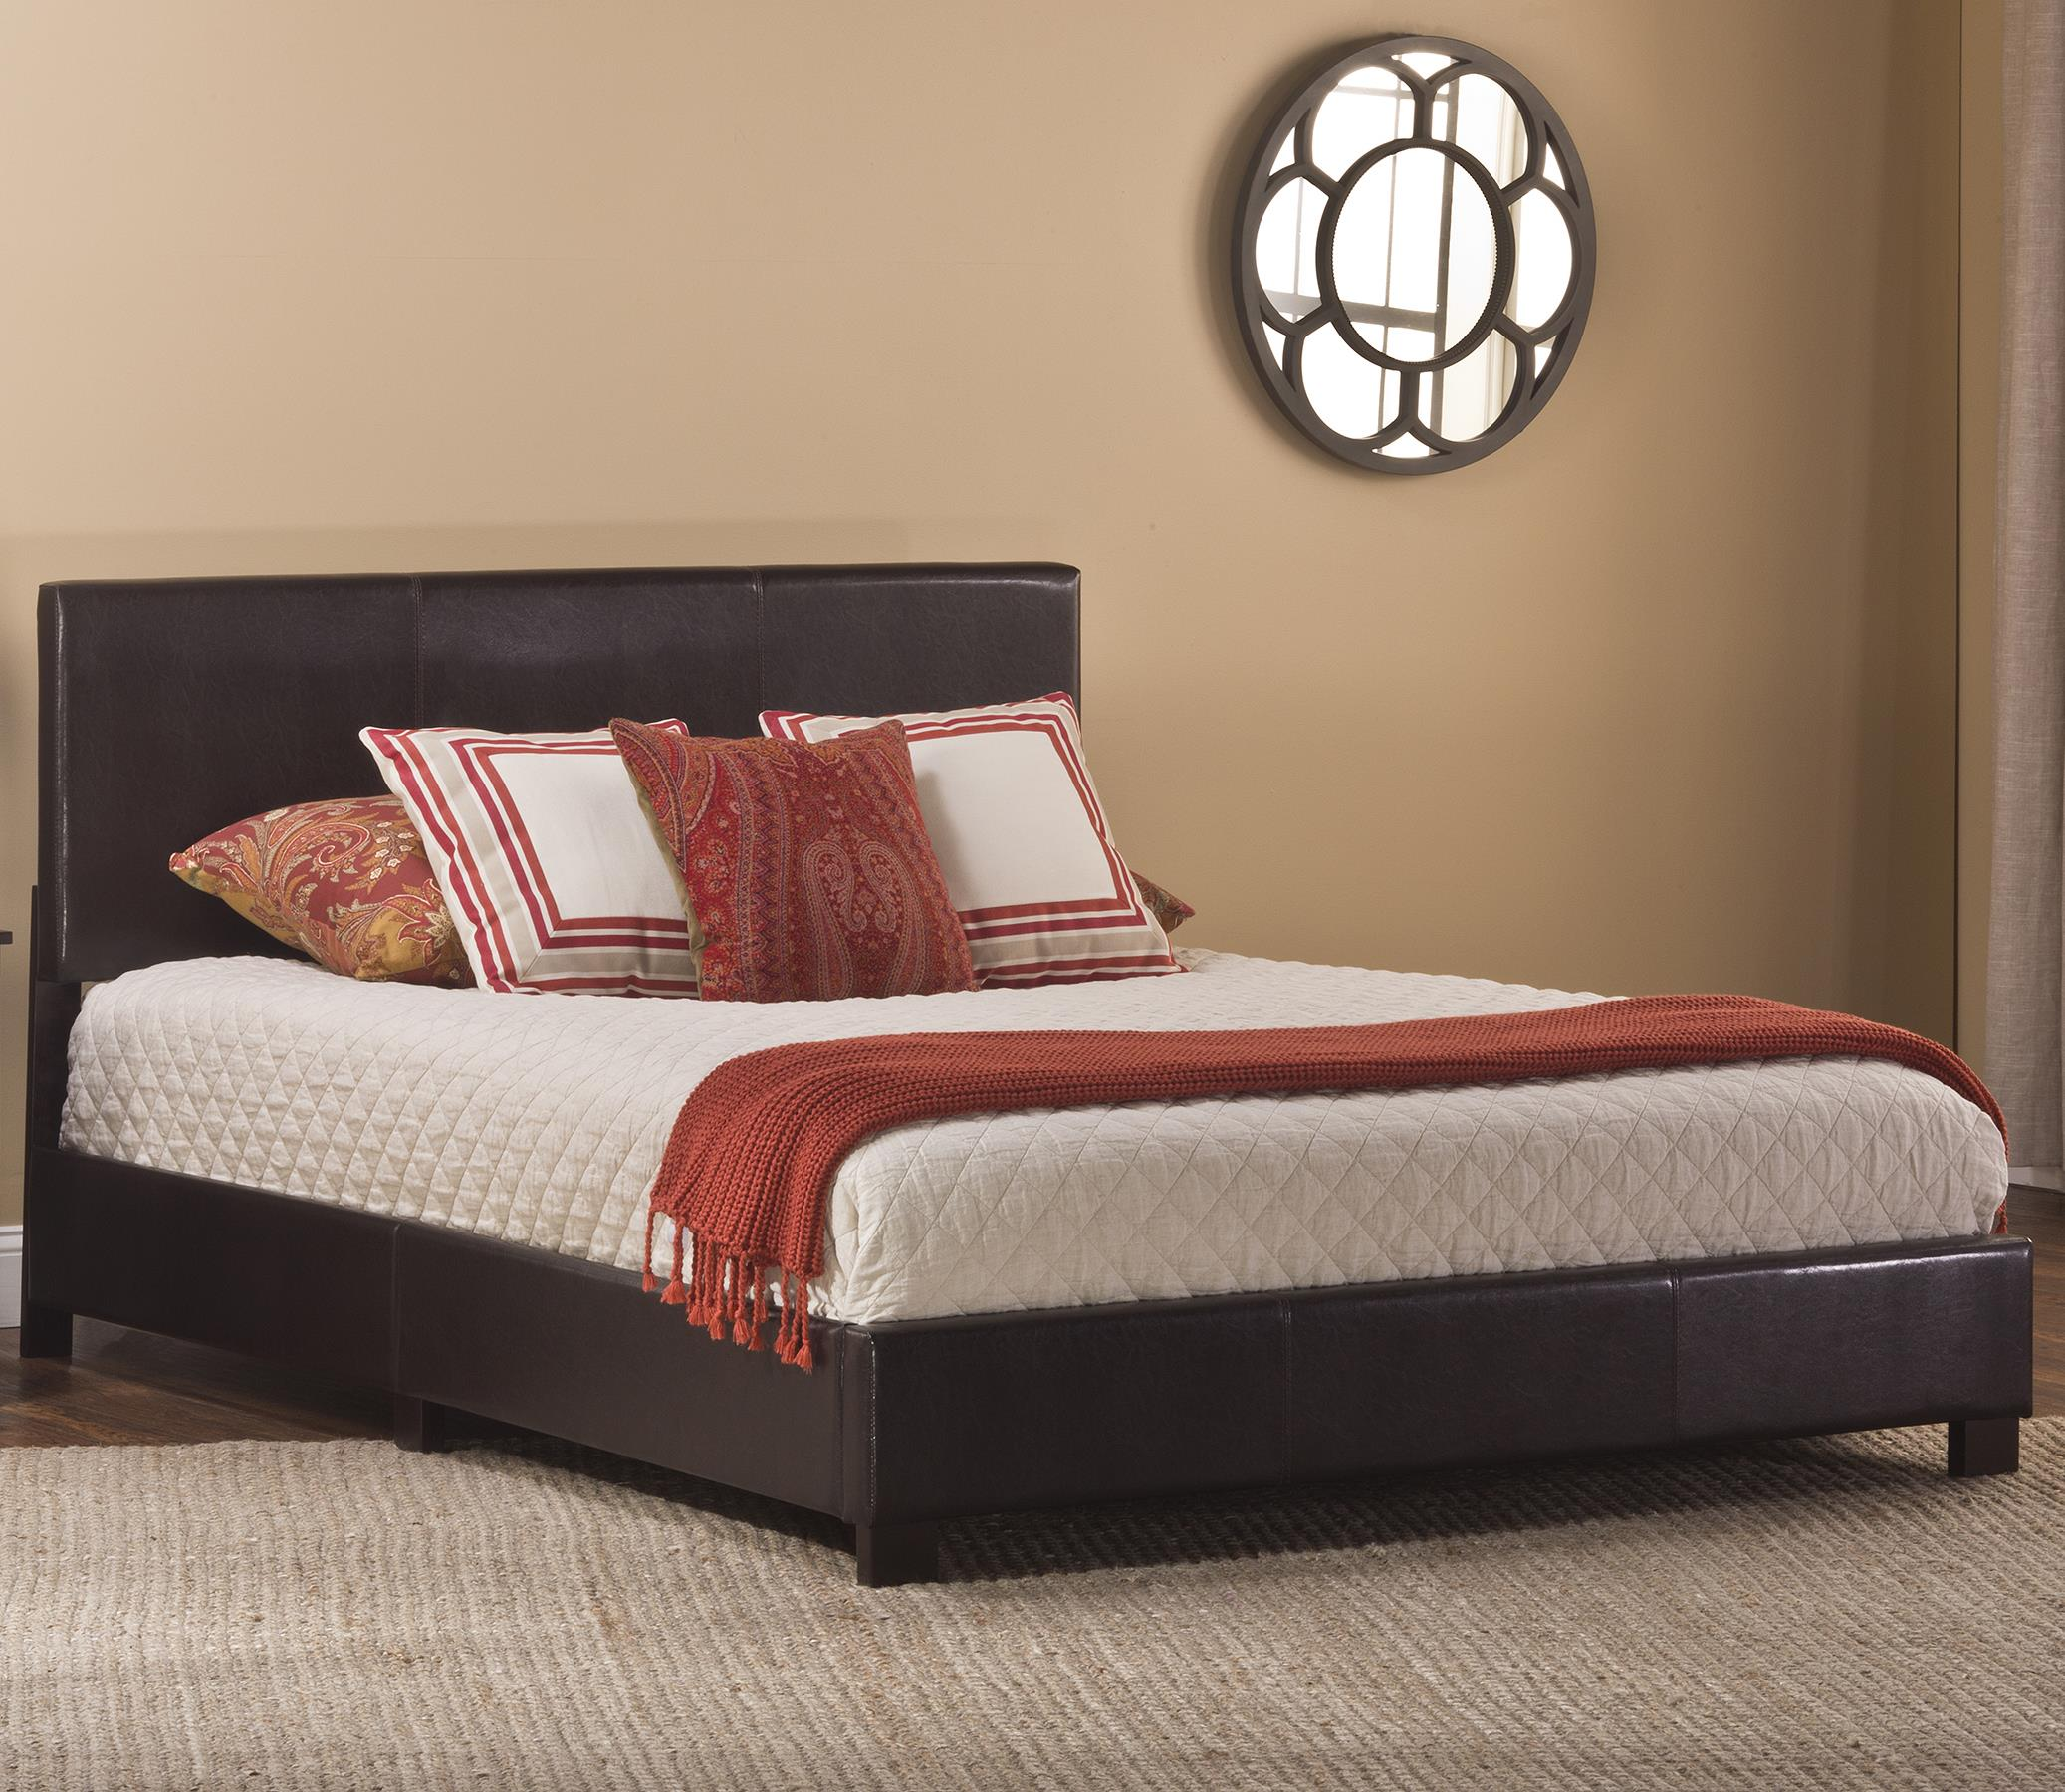 Hillsdale Bed In A Box Bed In A Box Queen Boulevard Home Furnishings Platform Or Low